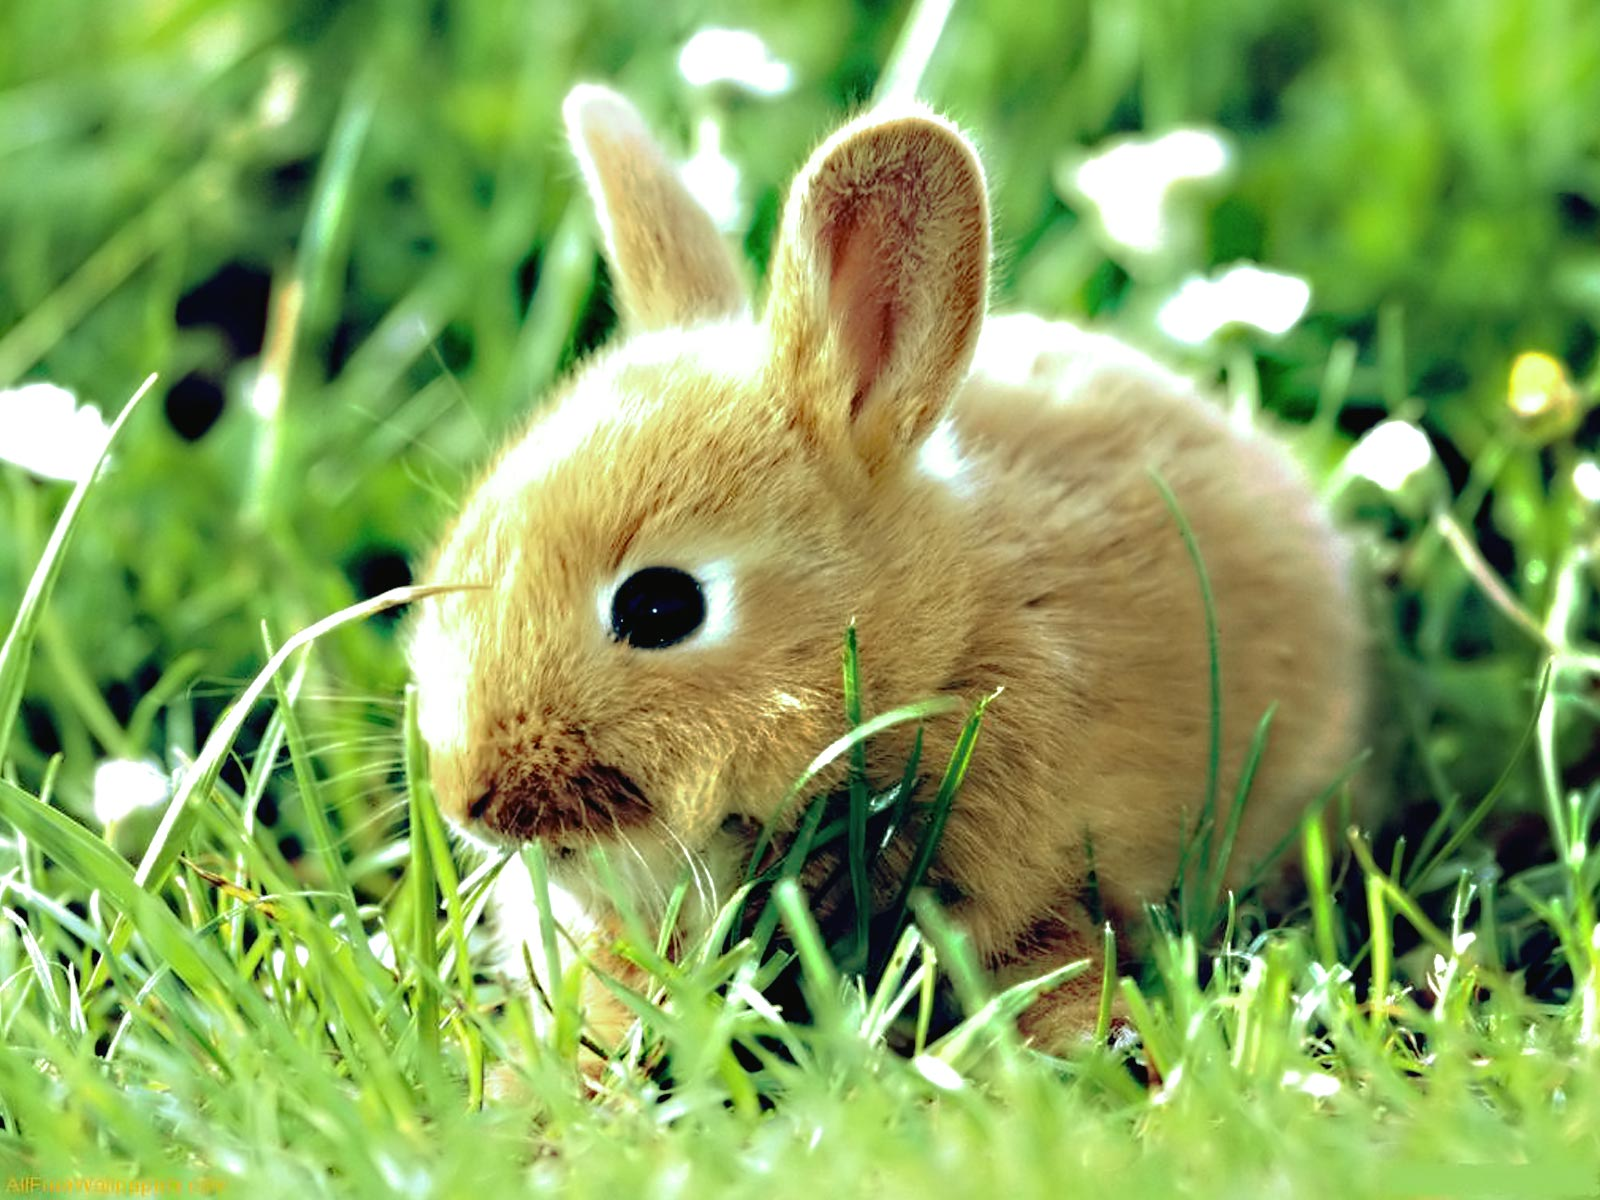 Spring Animal   Wallpaper High Definition High Quality Widescreen 1600x1200